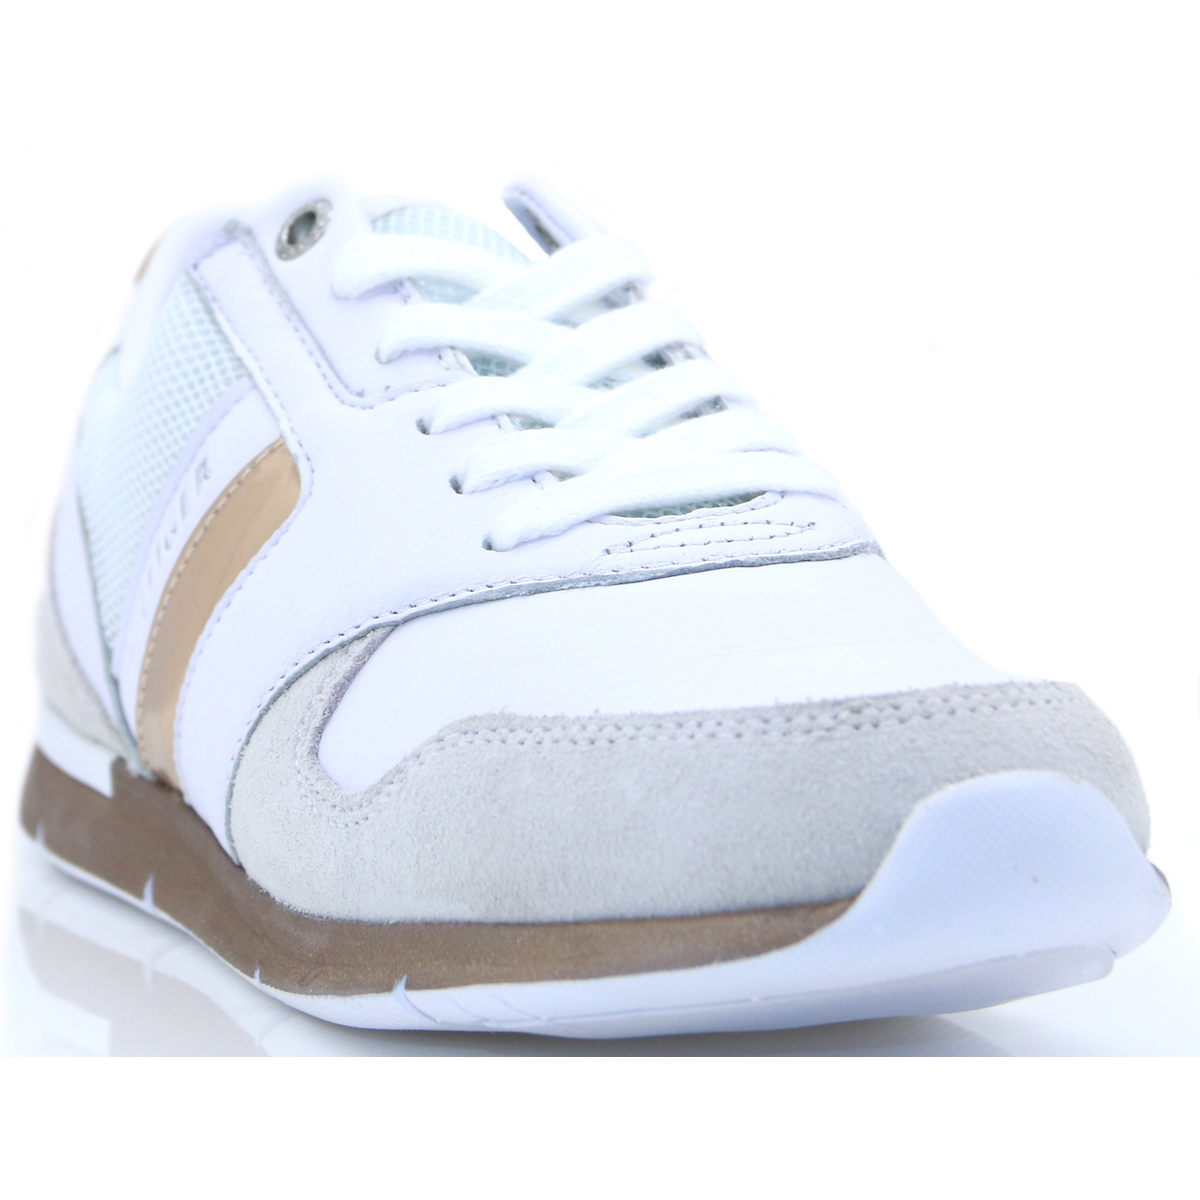 1dab49e0d Iridescent Light Sneaker - Tommy Hilfiger WHITE AND ROSE GOLD TRAINERS -  Panache Shoe Company